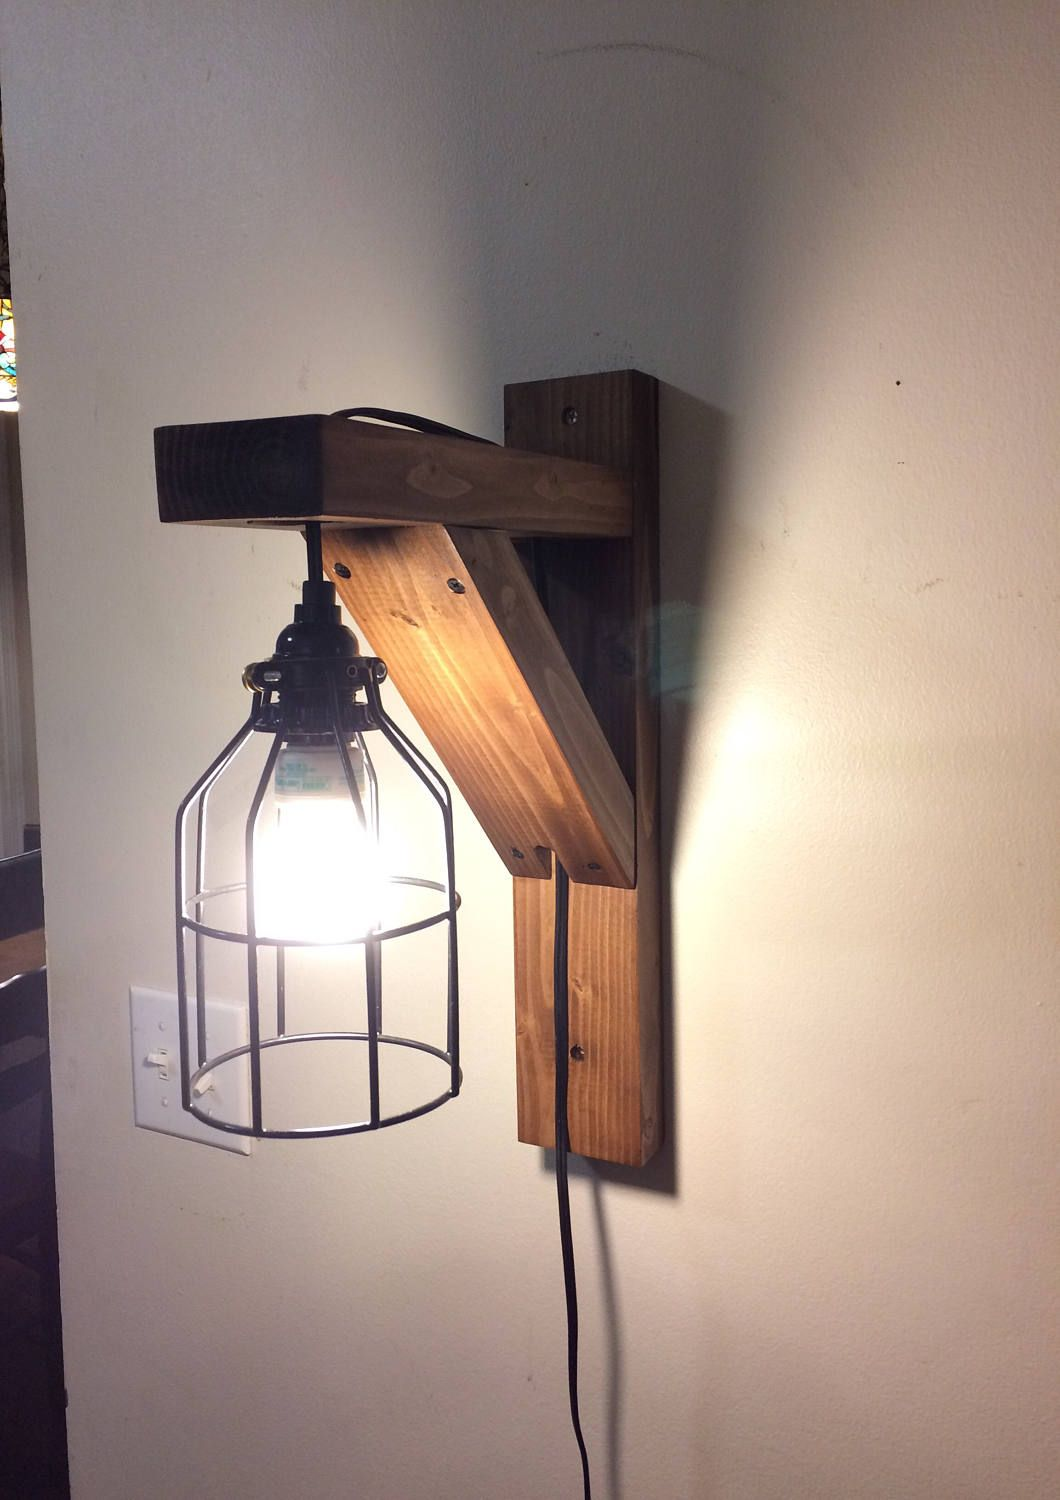 Wall Hanging Lamps rustic corbel light sconce, bedside light, rustic lamp, wall